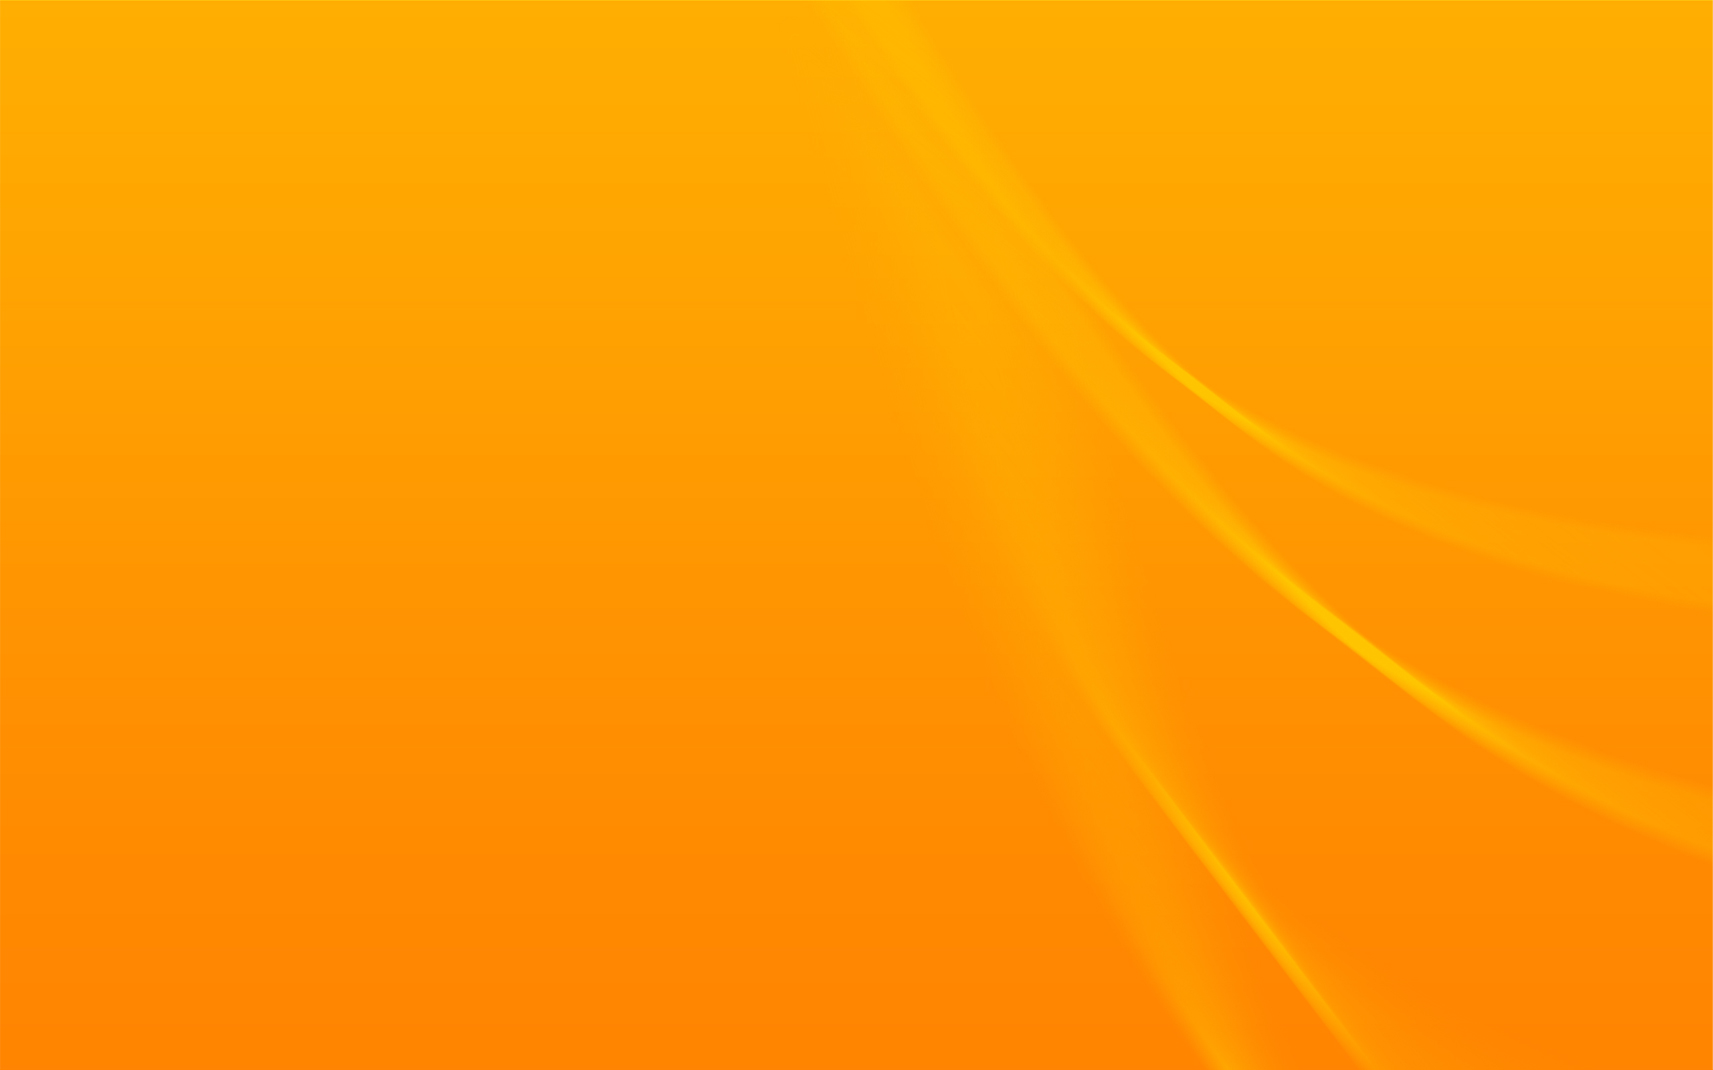 Download Orange 020 Wallpapers Pictures Photos and Backgrounds 1713x1070